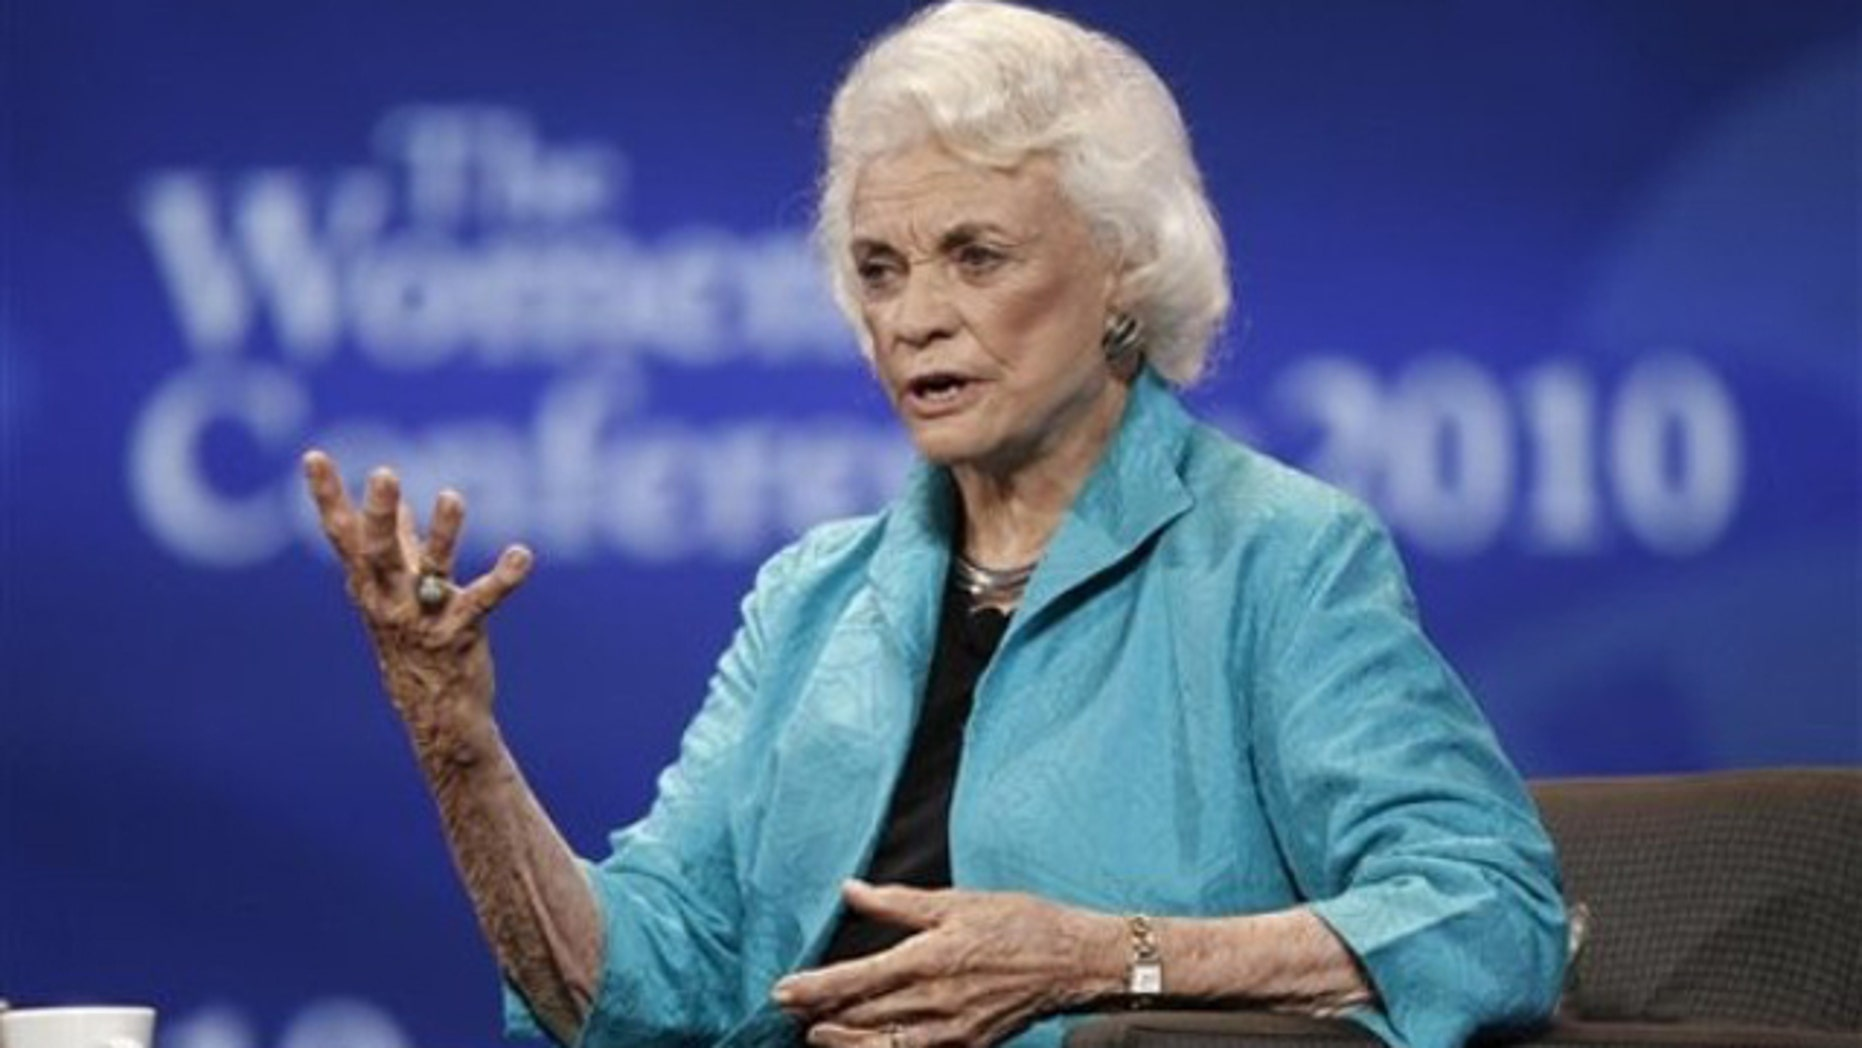 Former Supreme Court Justice Sandra Day O'Connor speaks at the Women's Conference Oct. 26, 2010, in Long Beach, Calif.